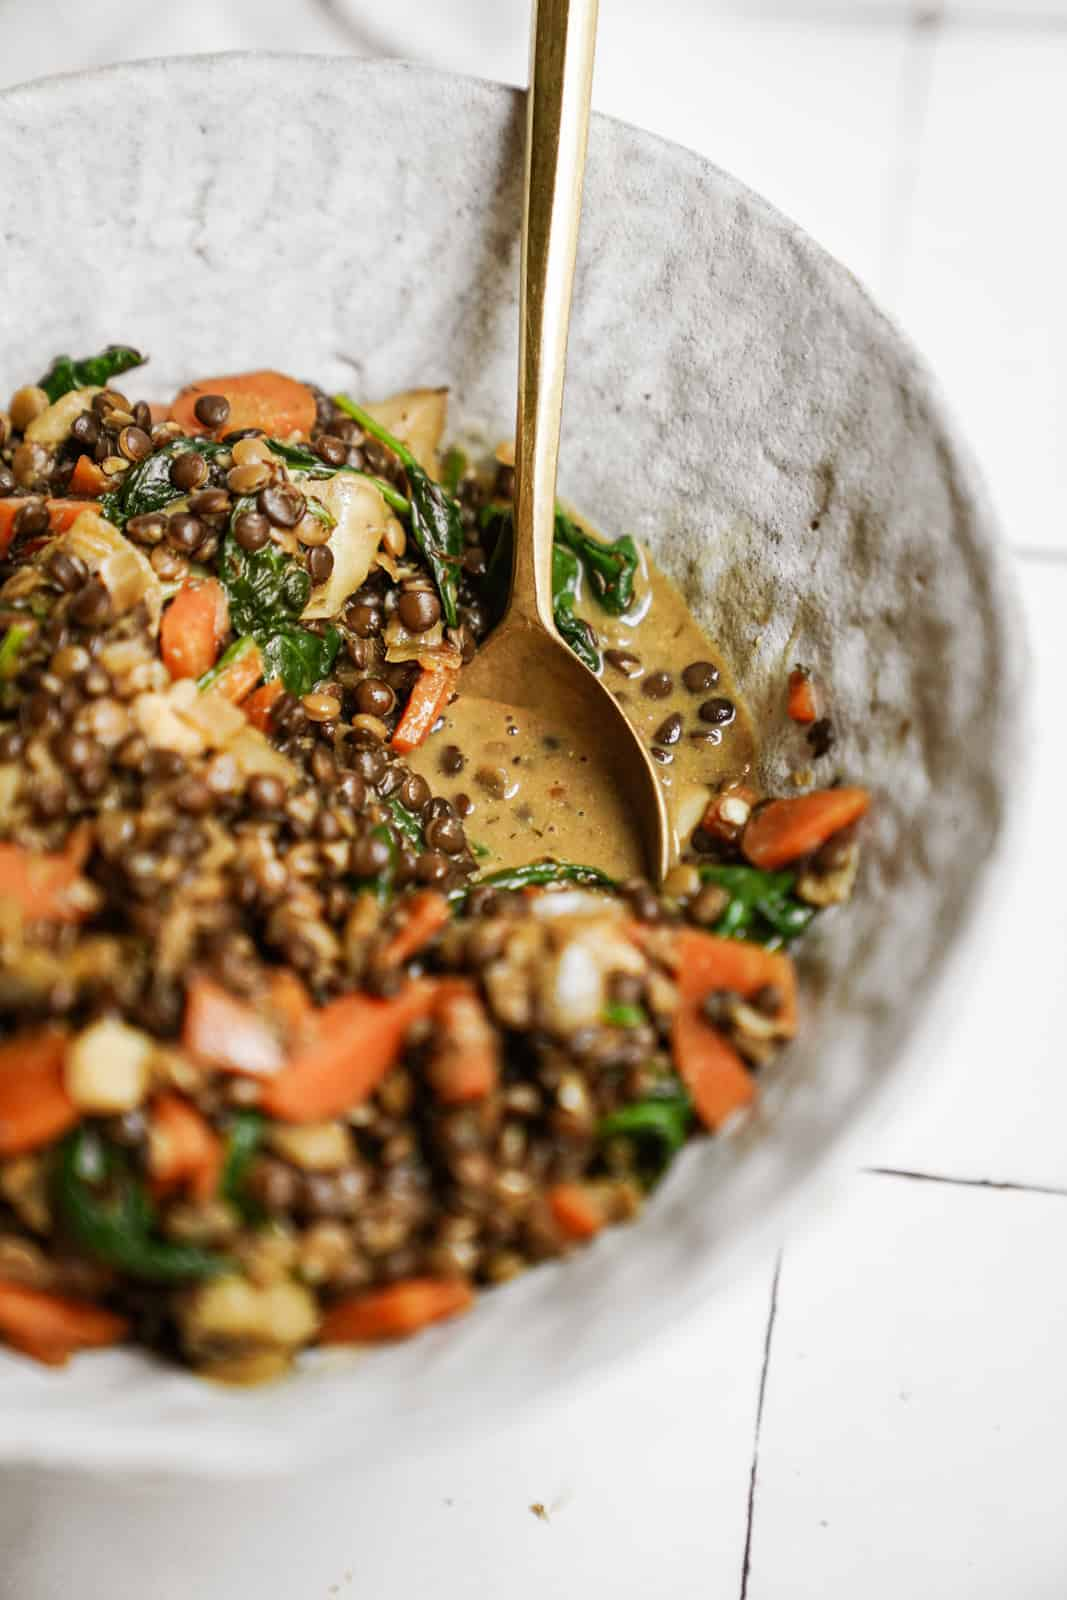 Lentils with Spinach in serving dish with spoon in the bowl.